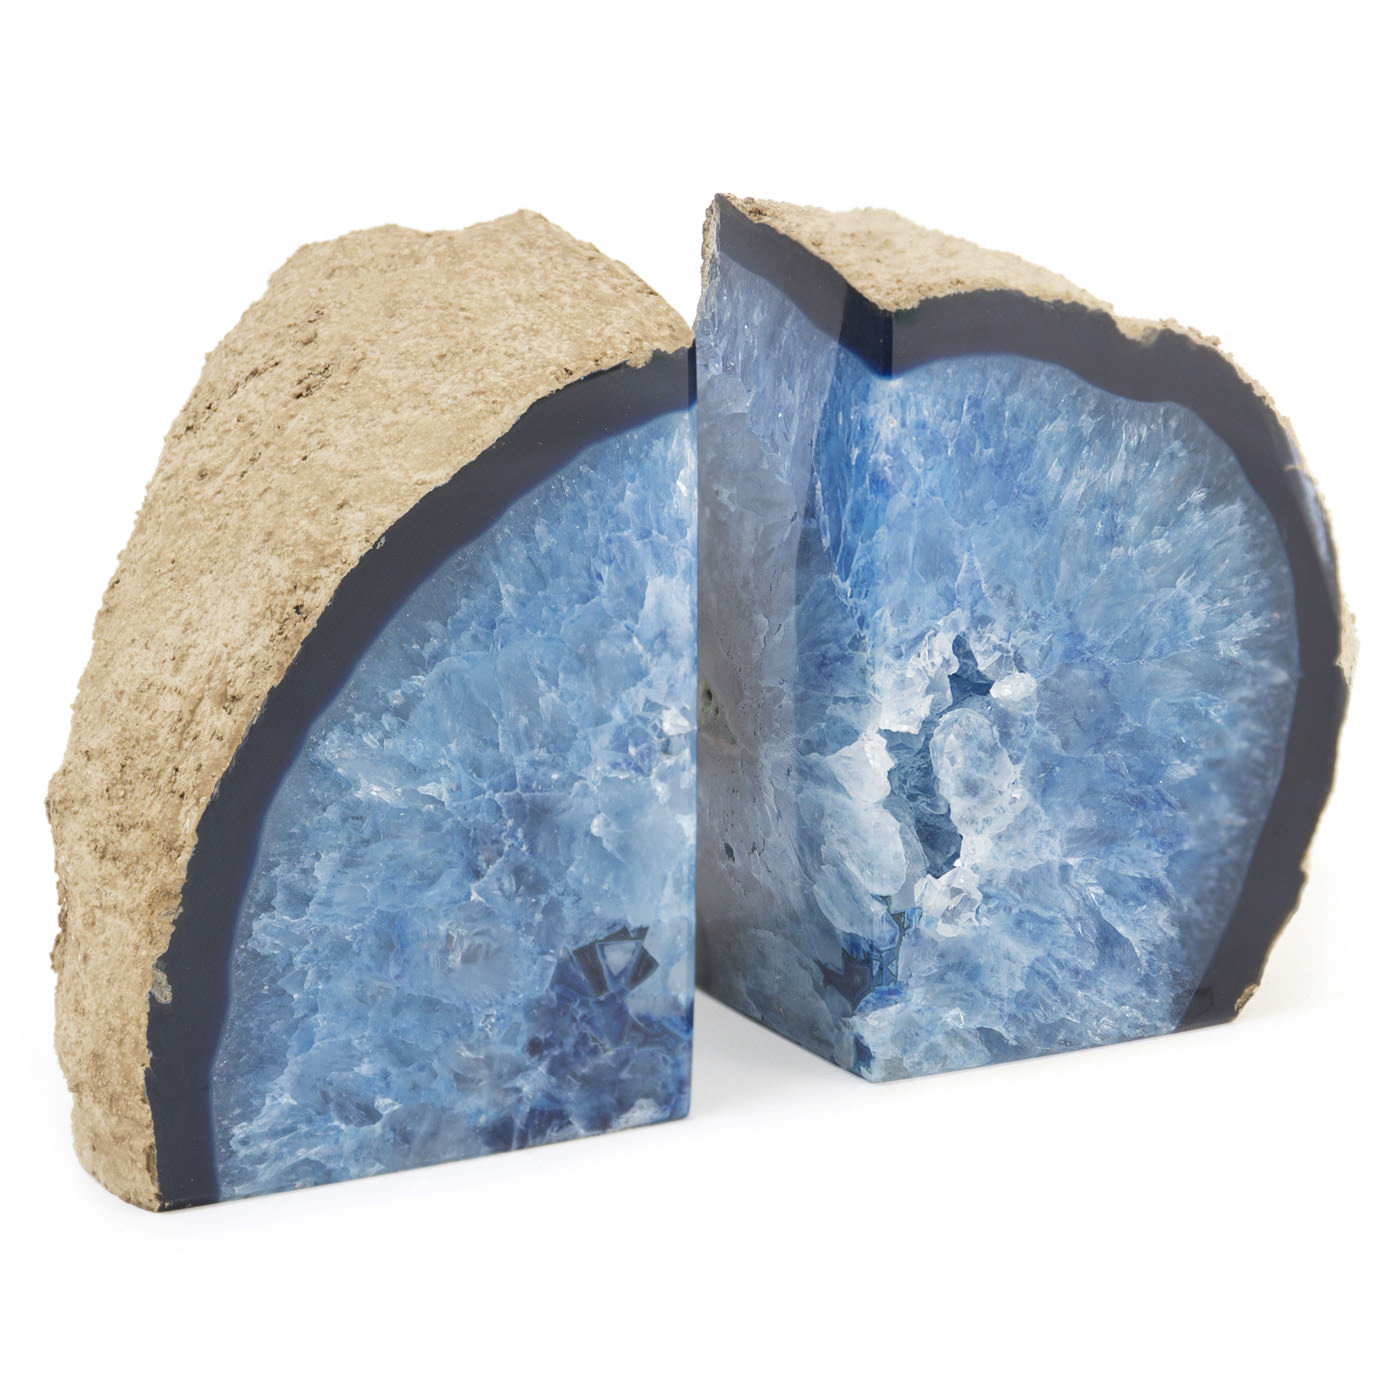 Cozy Geode Bookends | Enchanting Mineral Bookends Inspiration